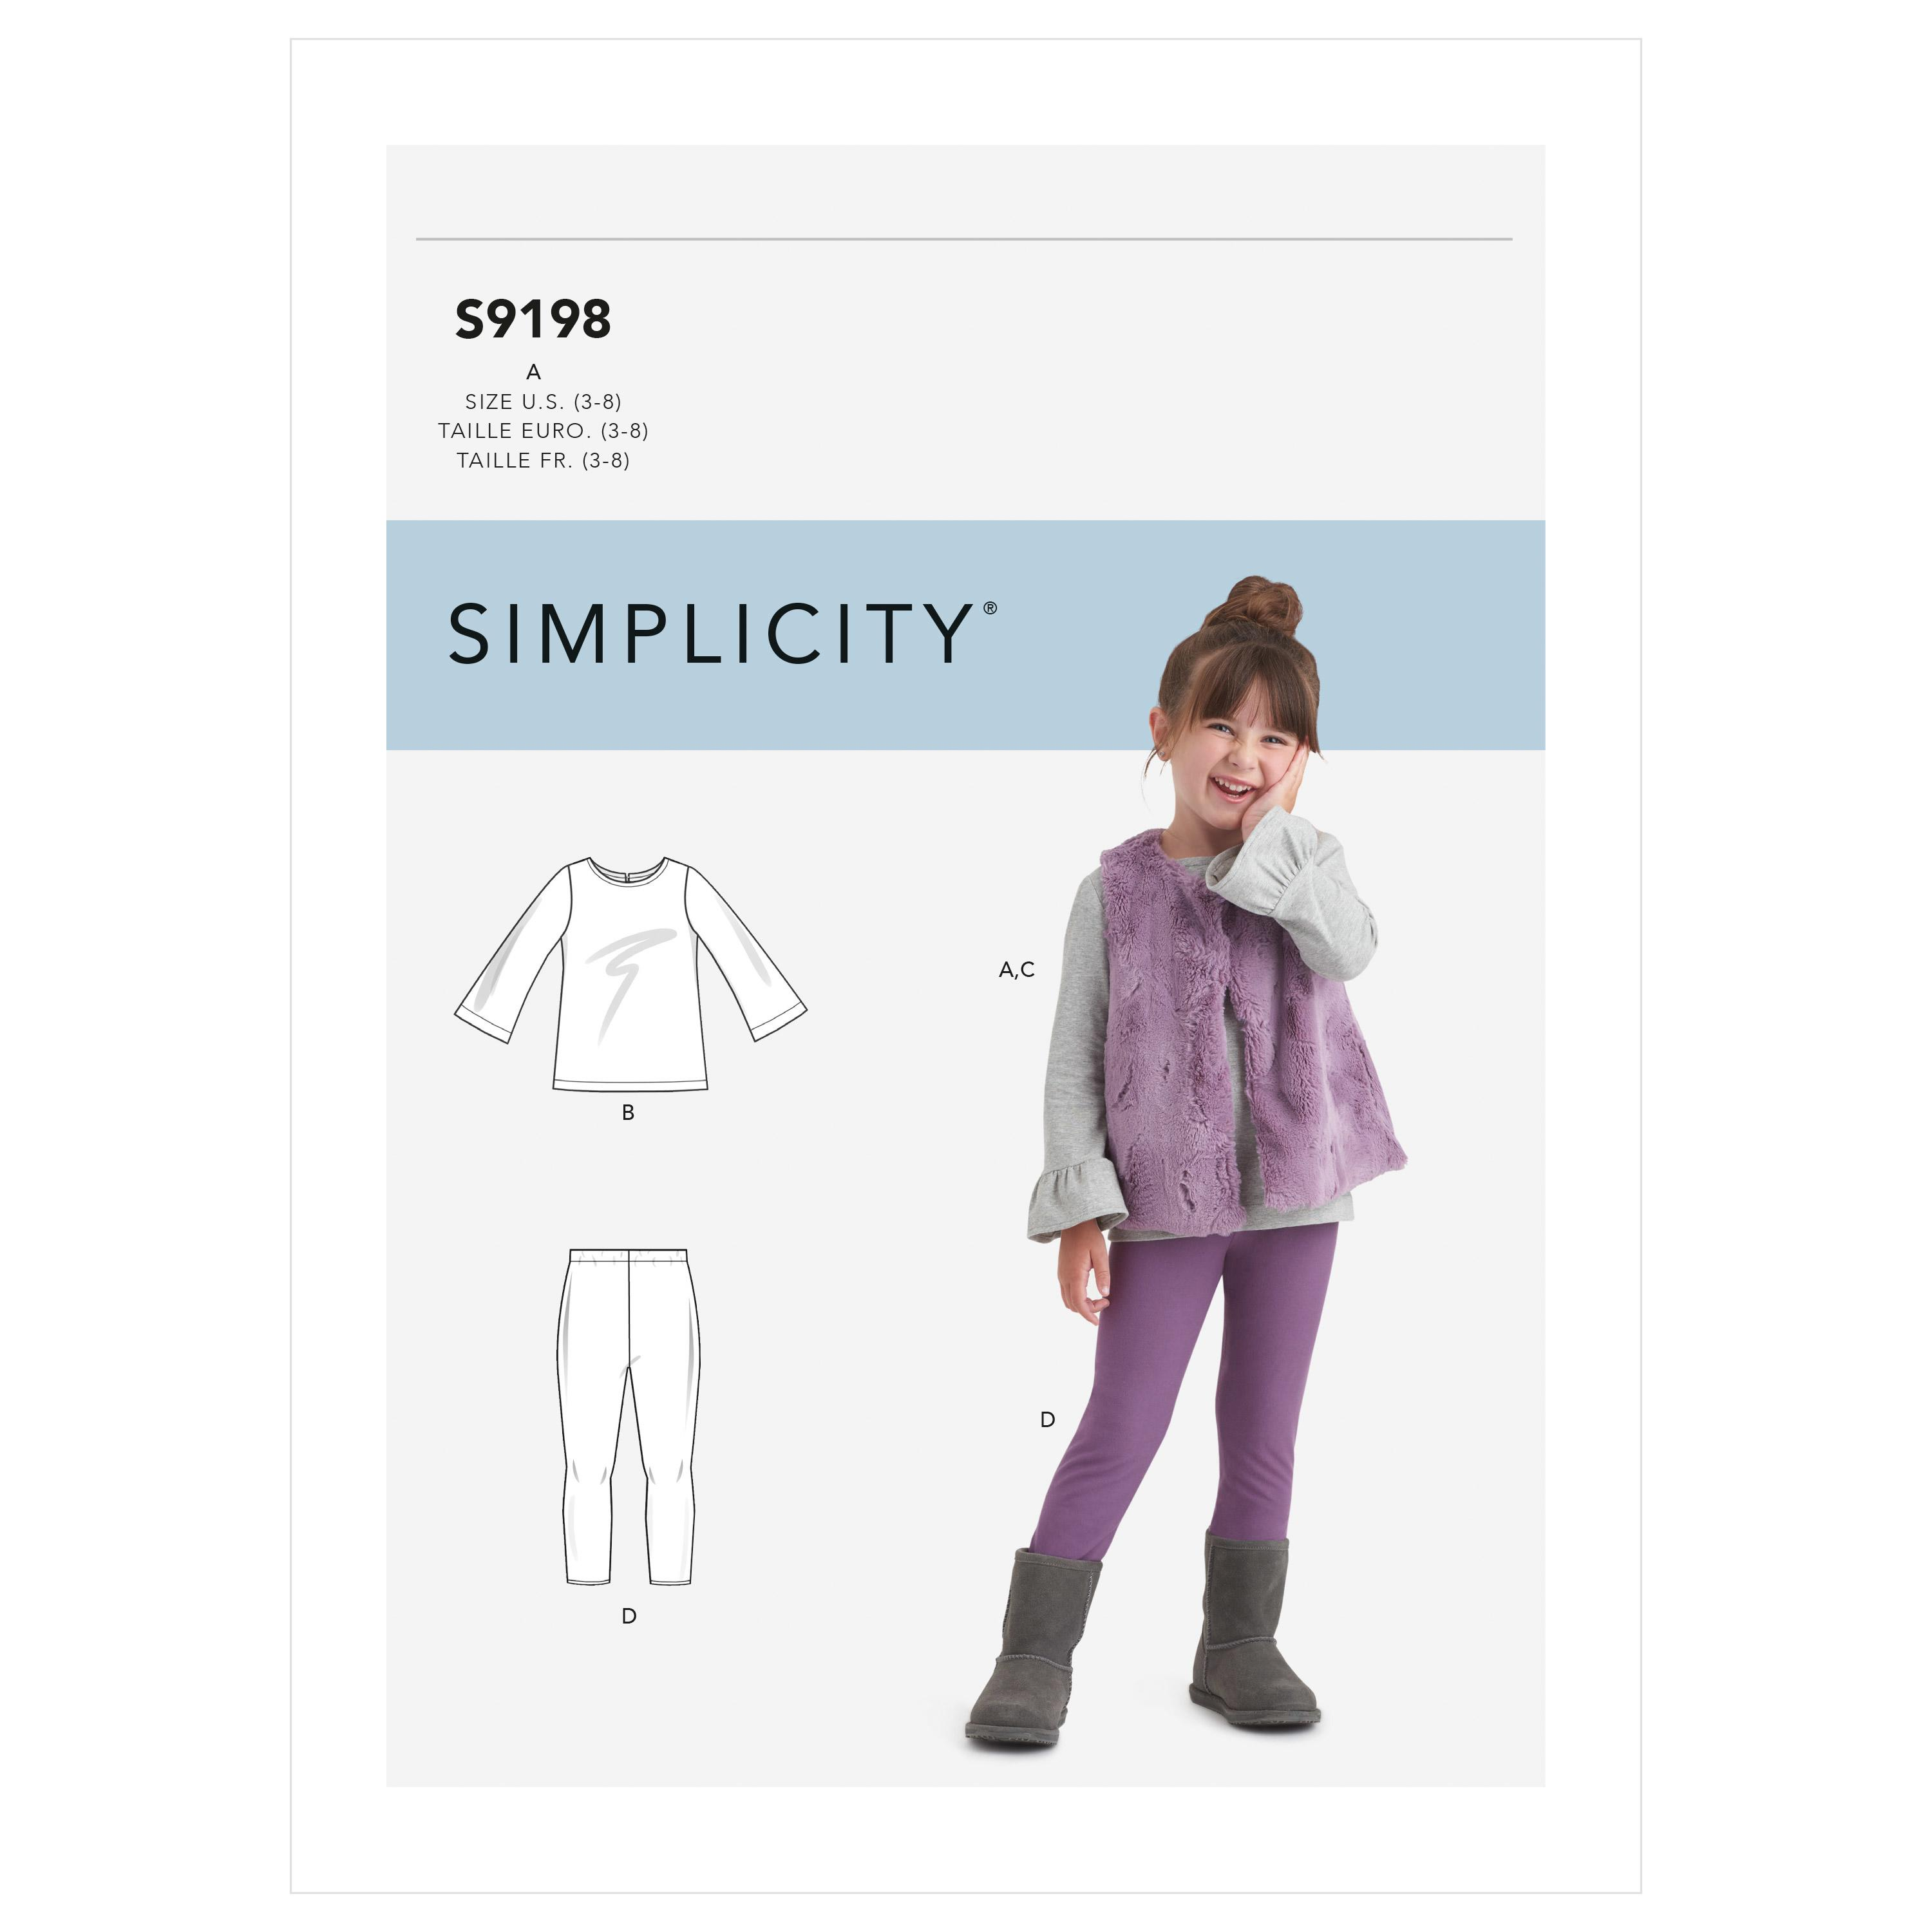 Simplicity Sewing Pattern S9198 Children's Tops, Vest & Leggings